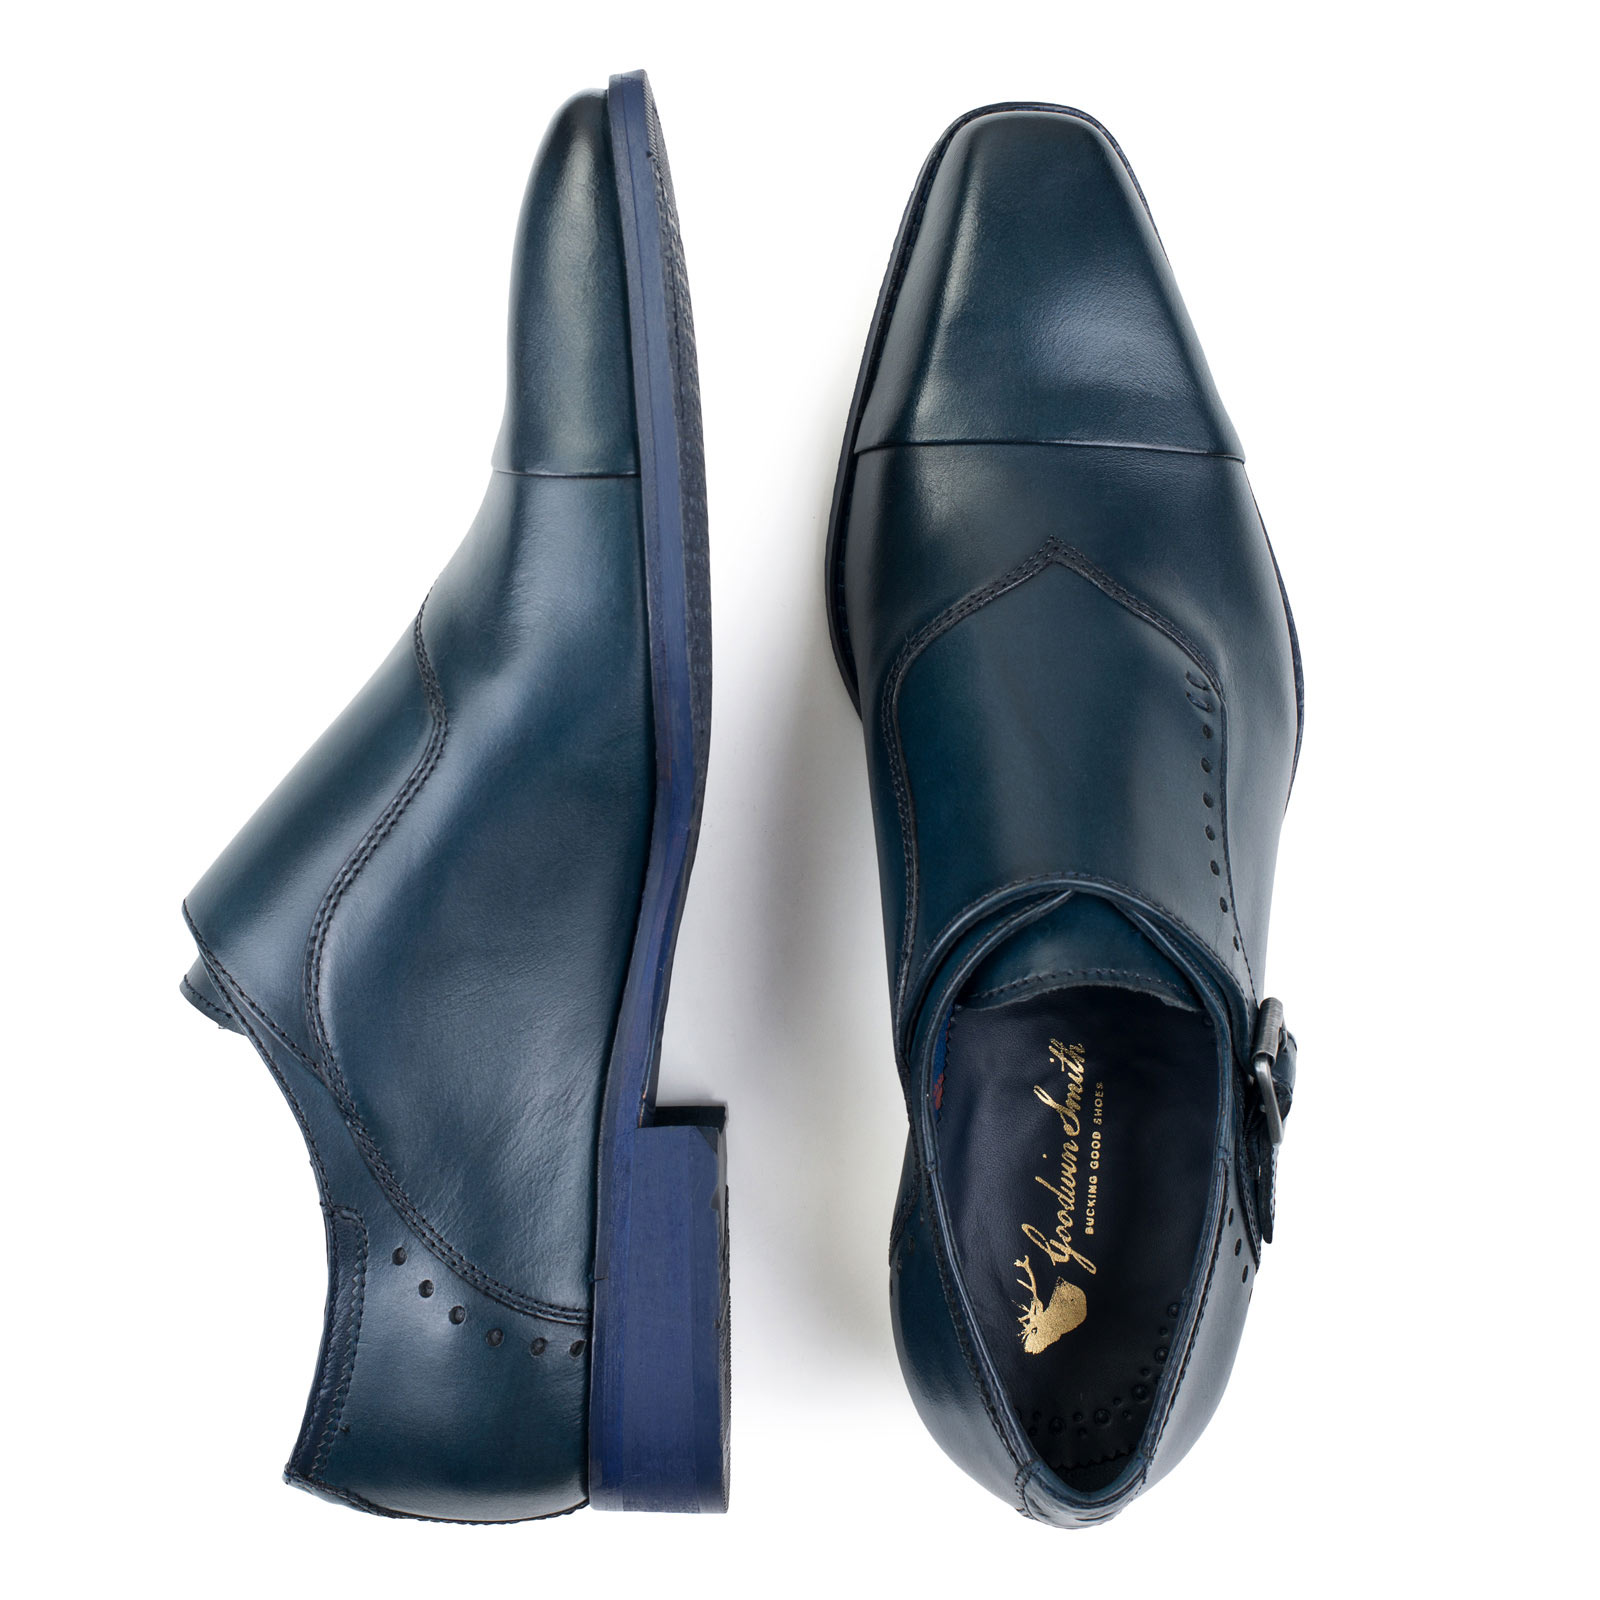 New Goodwin Smith Walsden  Uomo Monk Strap Strap Strap Schuhes ALL SIZES AND COLOURS adbd10